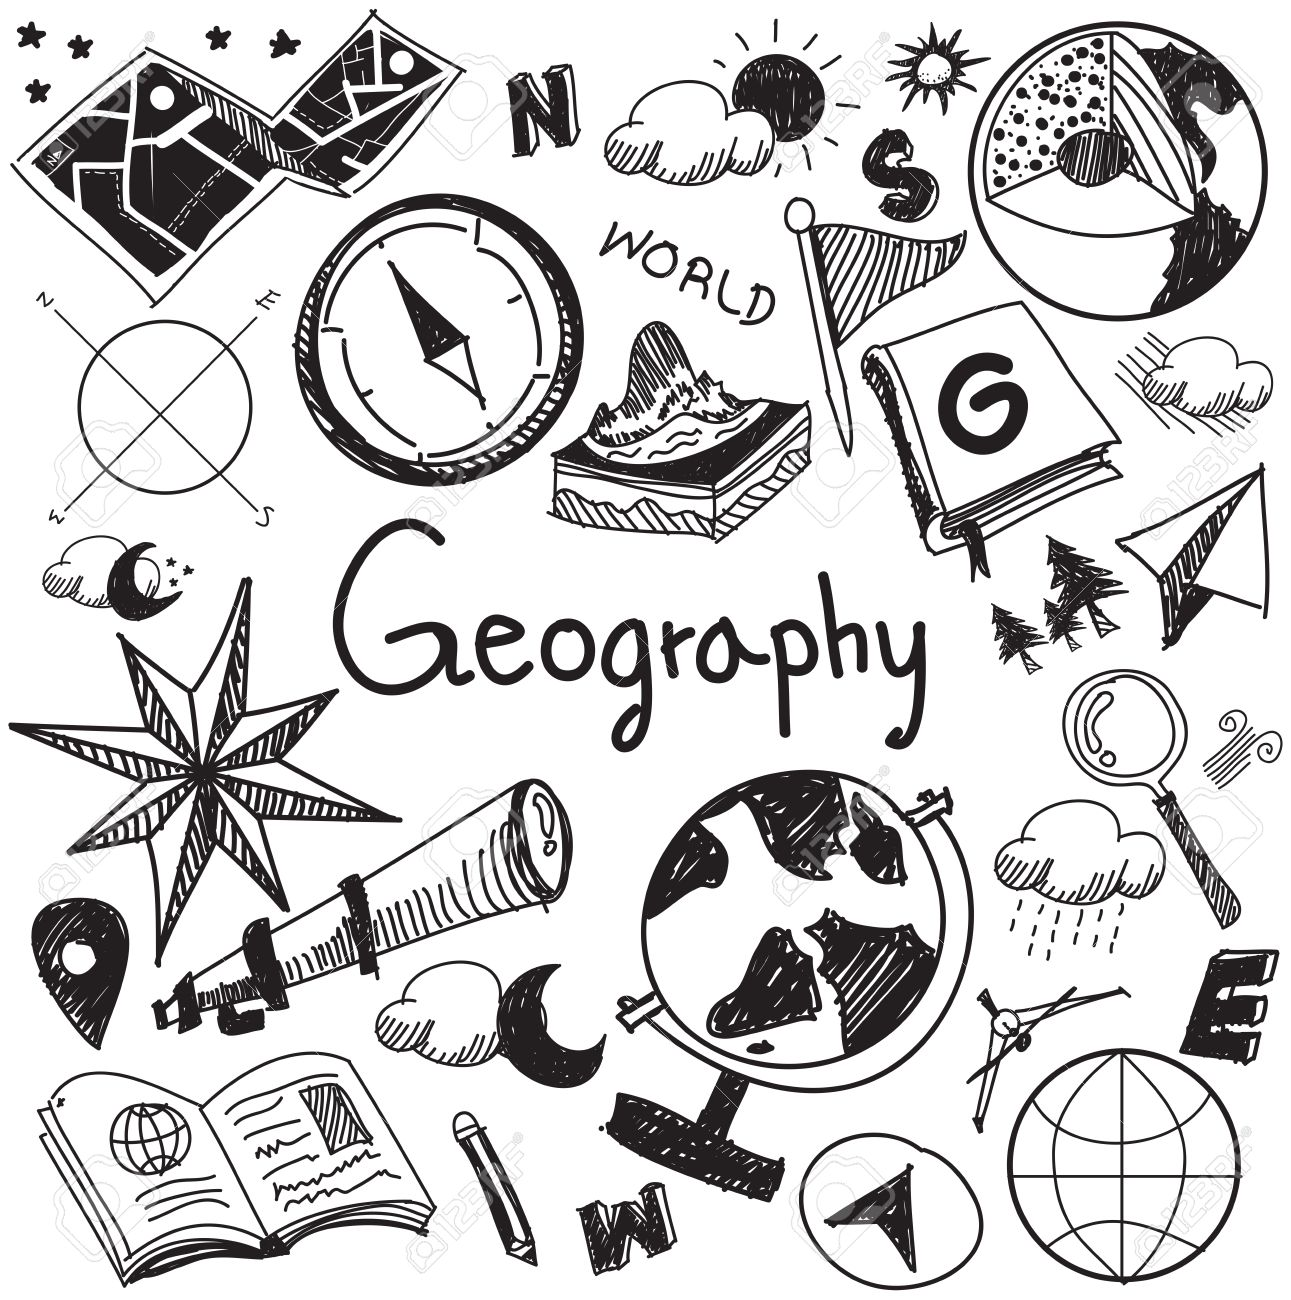 Geography and geology education subject handwriting doodle icon of earth exploration and map design sign and symbol in white isolated background paper used for presentation title with header text, create by vector - 51173761